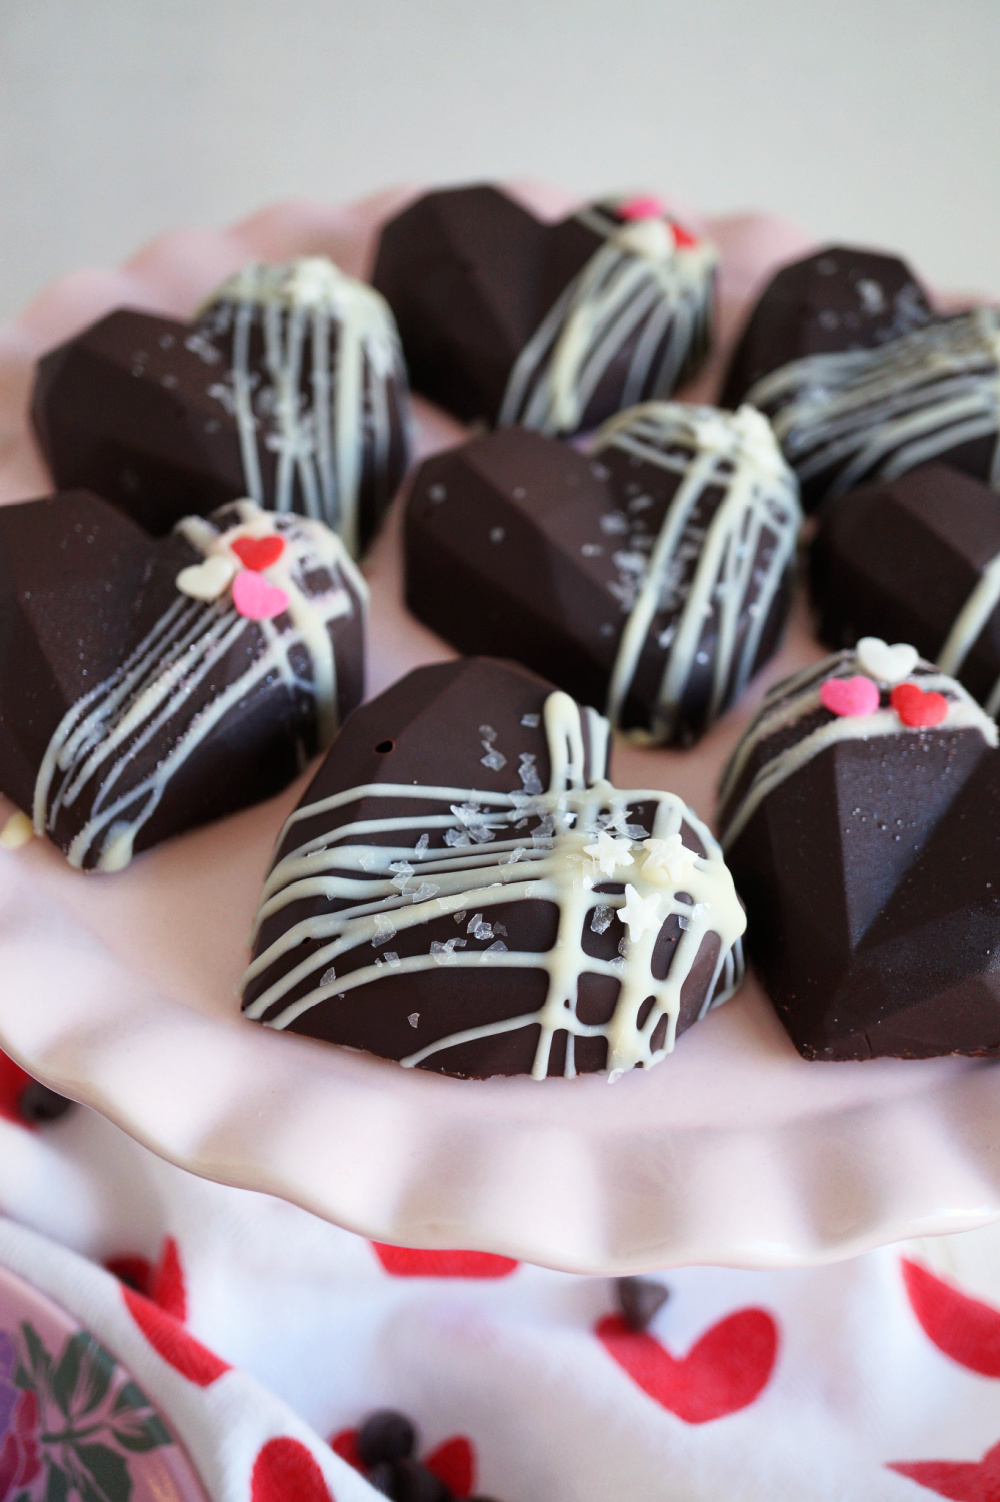 heart shaped chocolates on pink cake stand